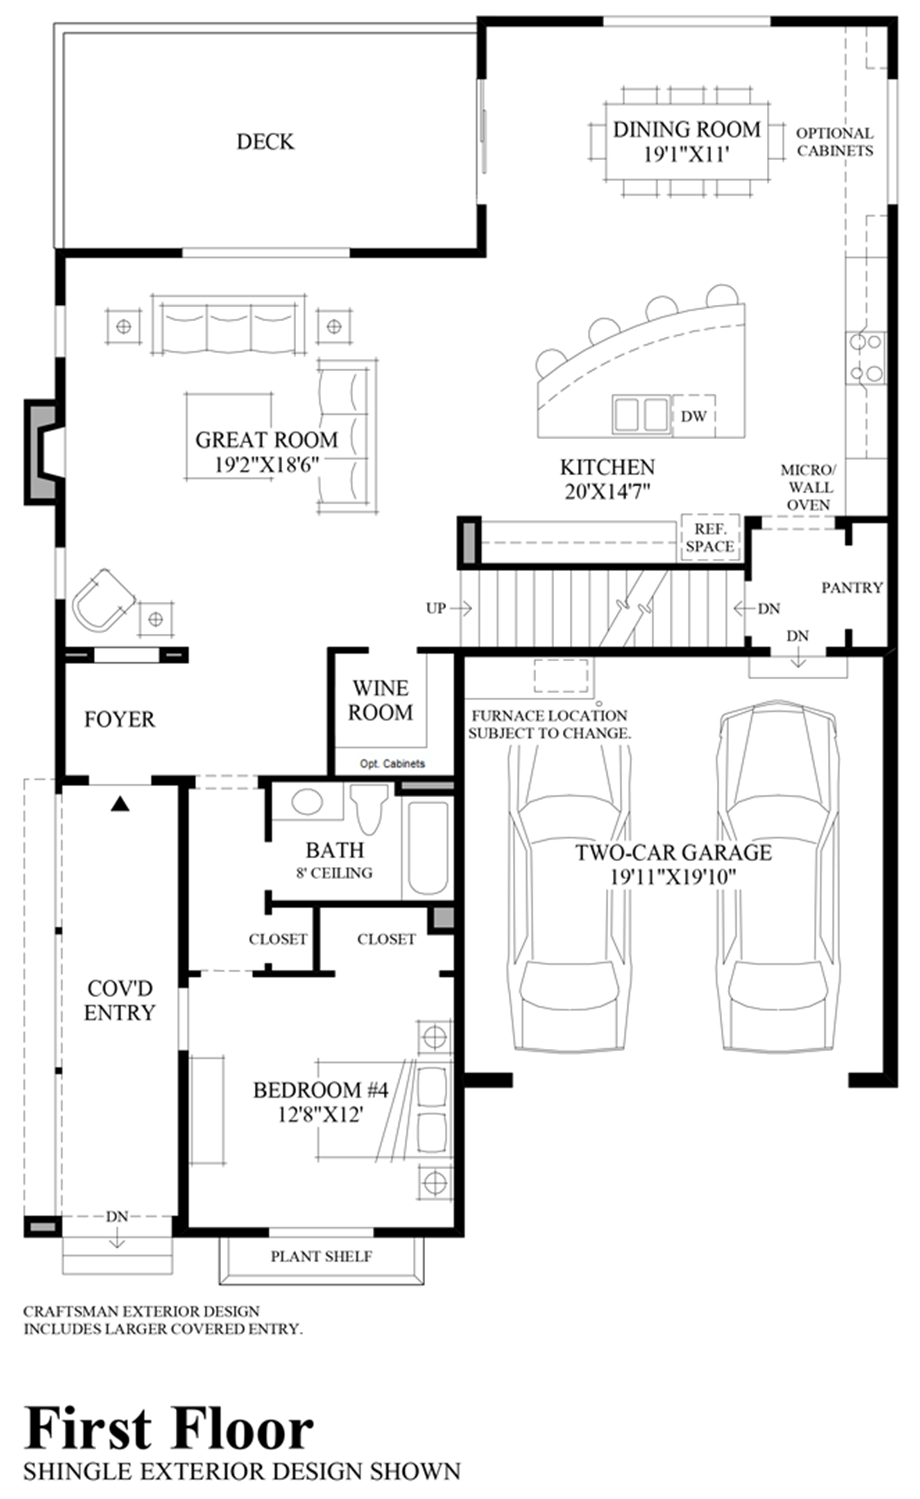 Pipers glen the ballard with basement home design for Floor plans first